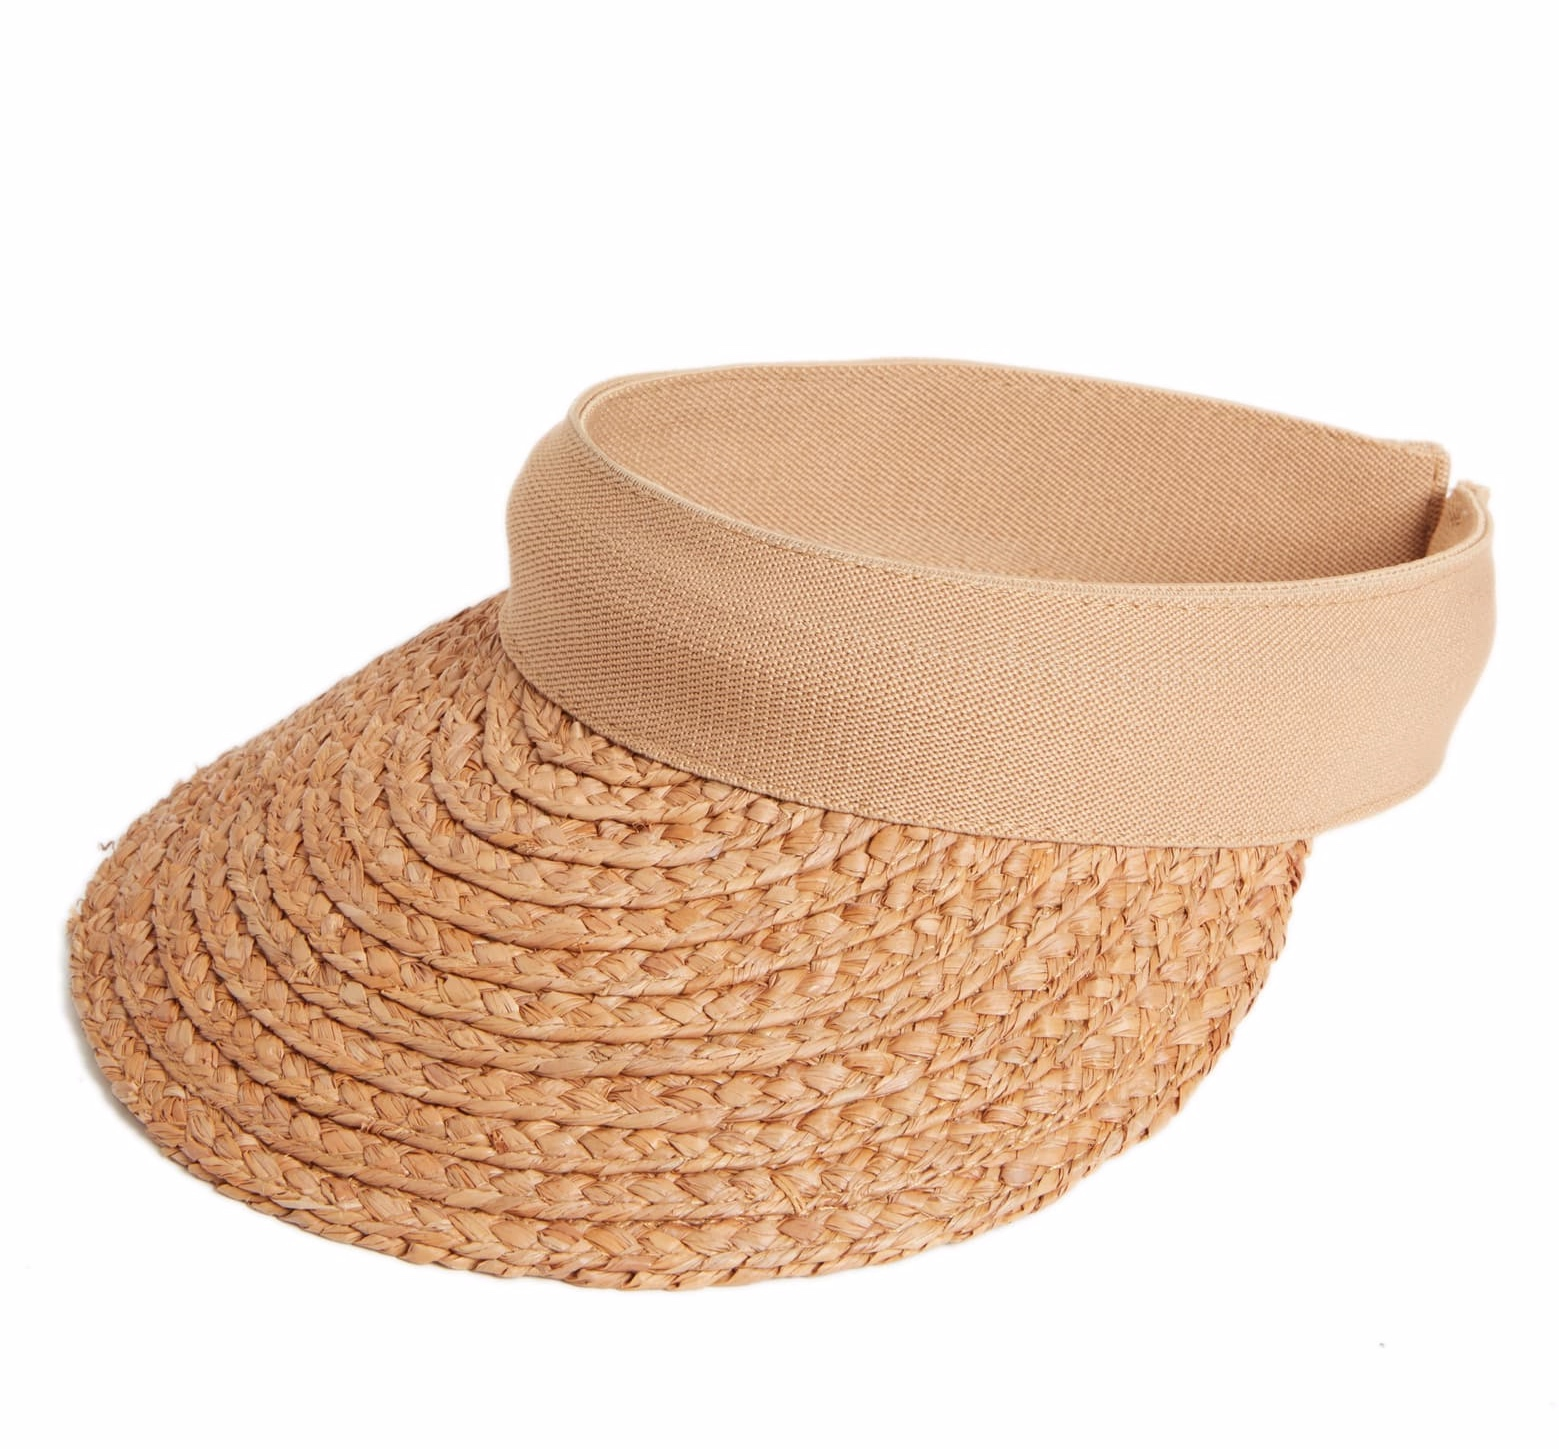 Perfect to block the sun, but not have a hat crush your hair or make you extra sweaty! It's breezy and the braided straw makes it cute and fun!